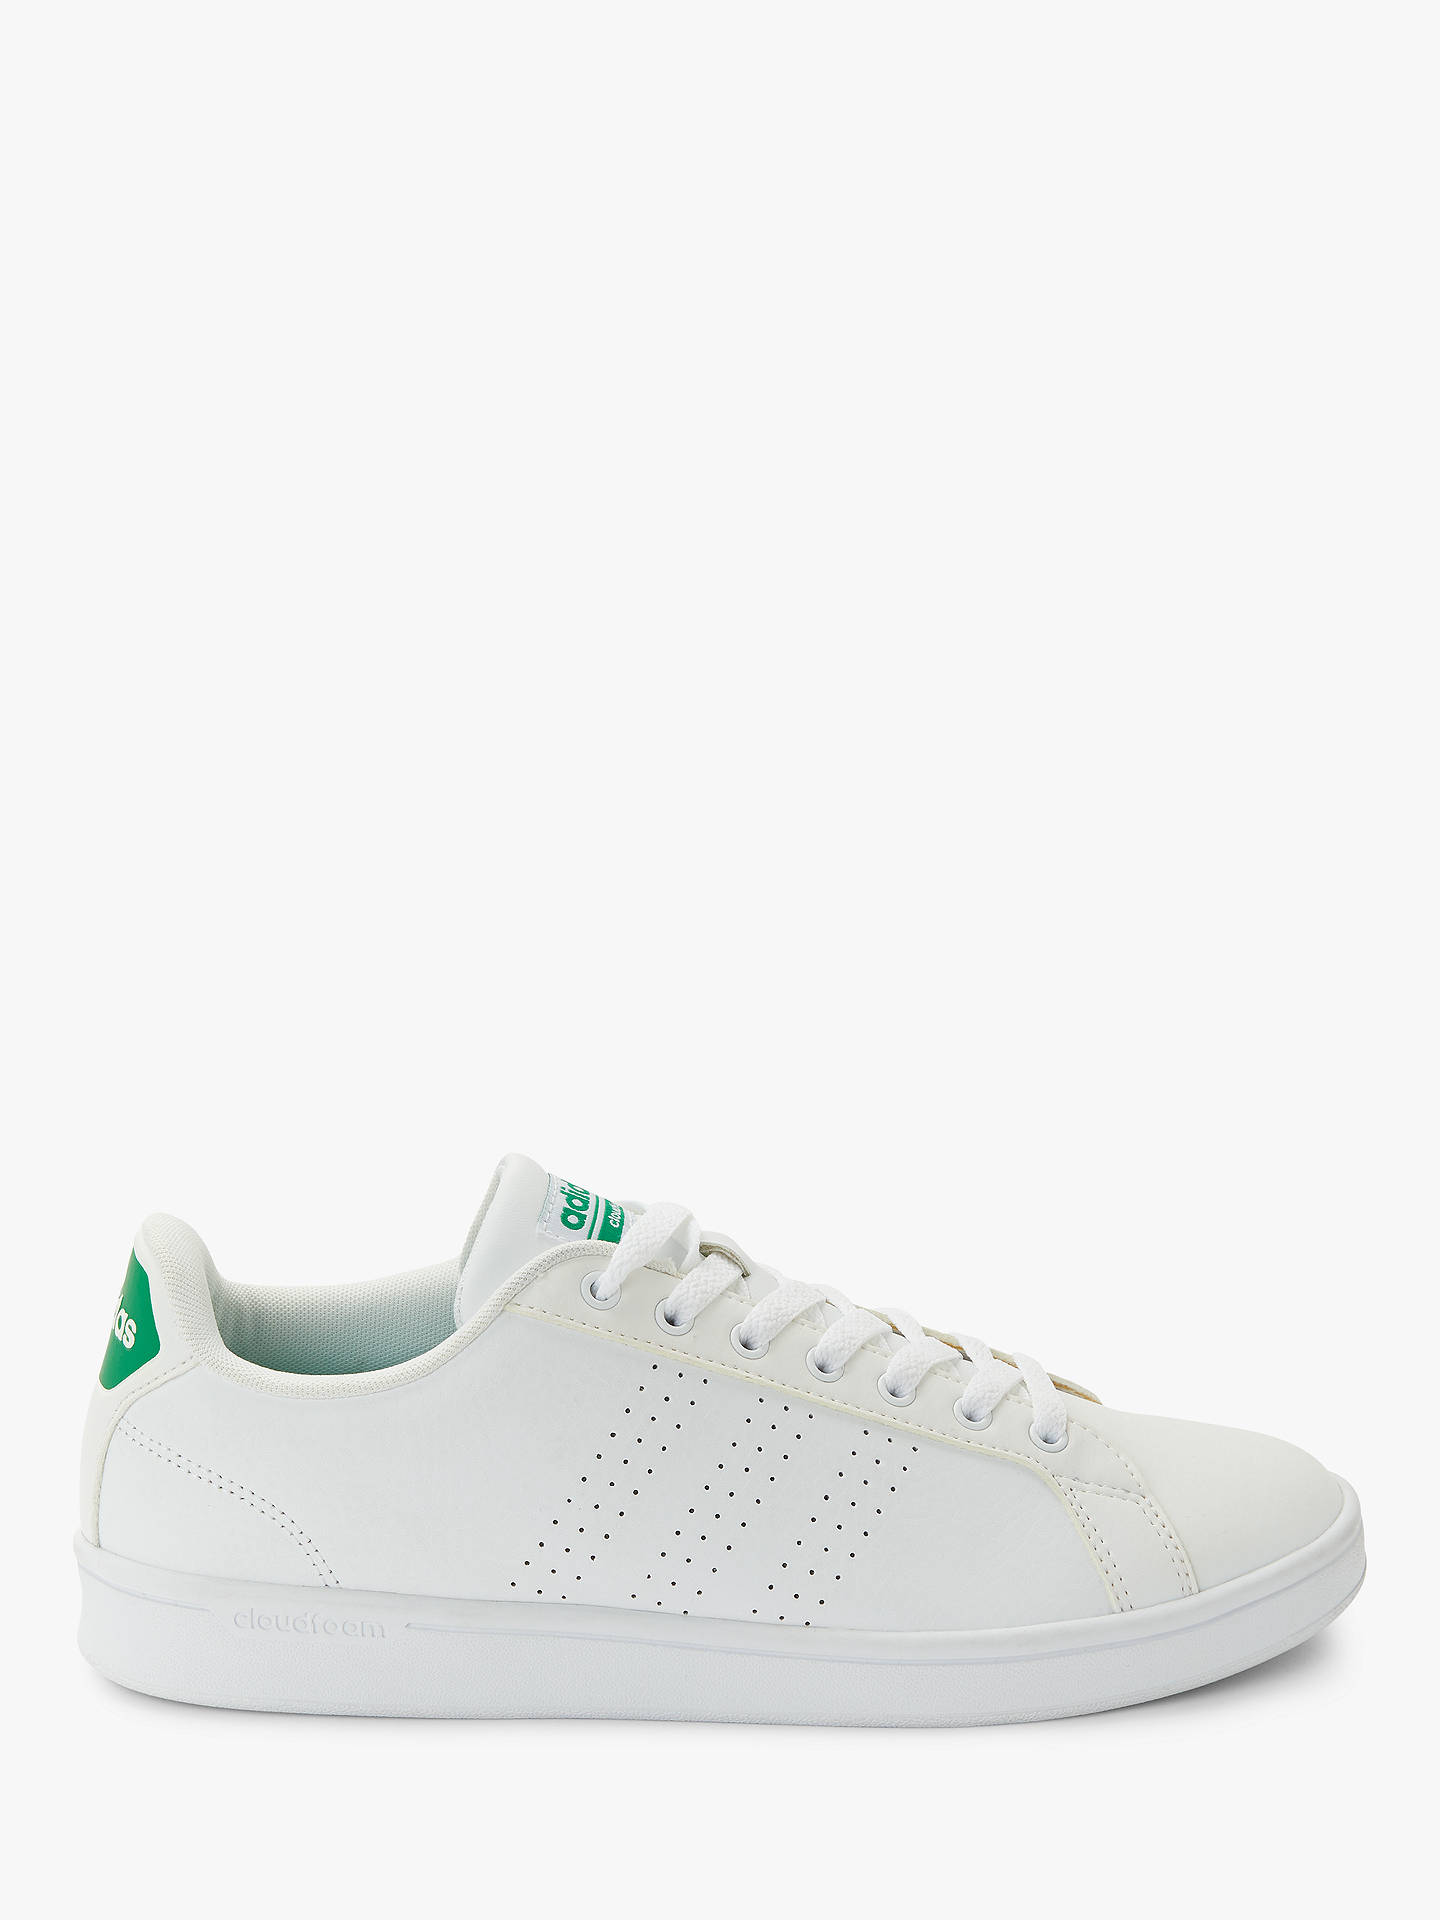 f1bffa9422e61 Buy adidas Cloudfoam Advantage Clean Men s Trainers